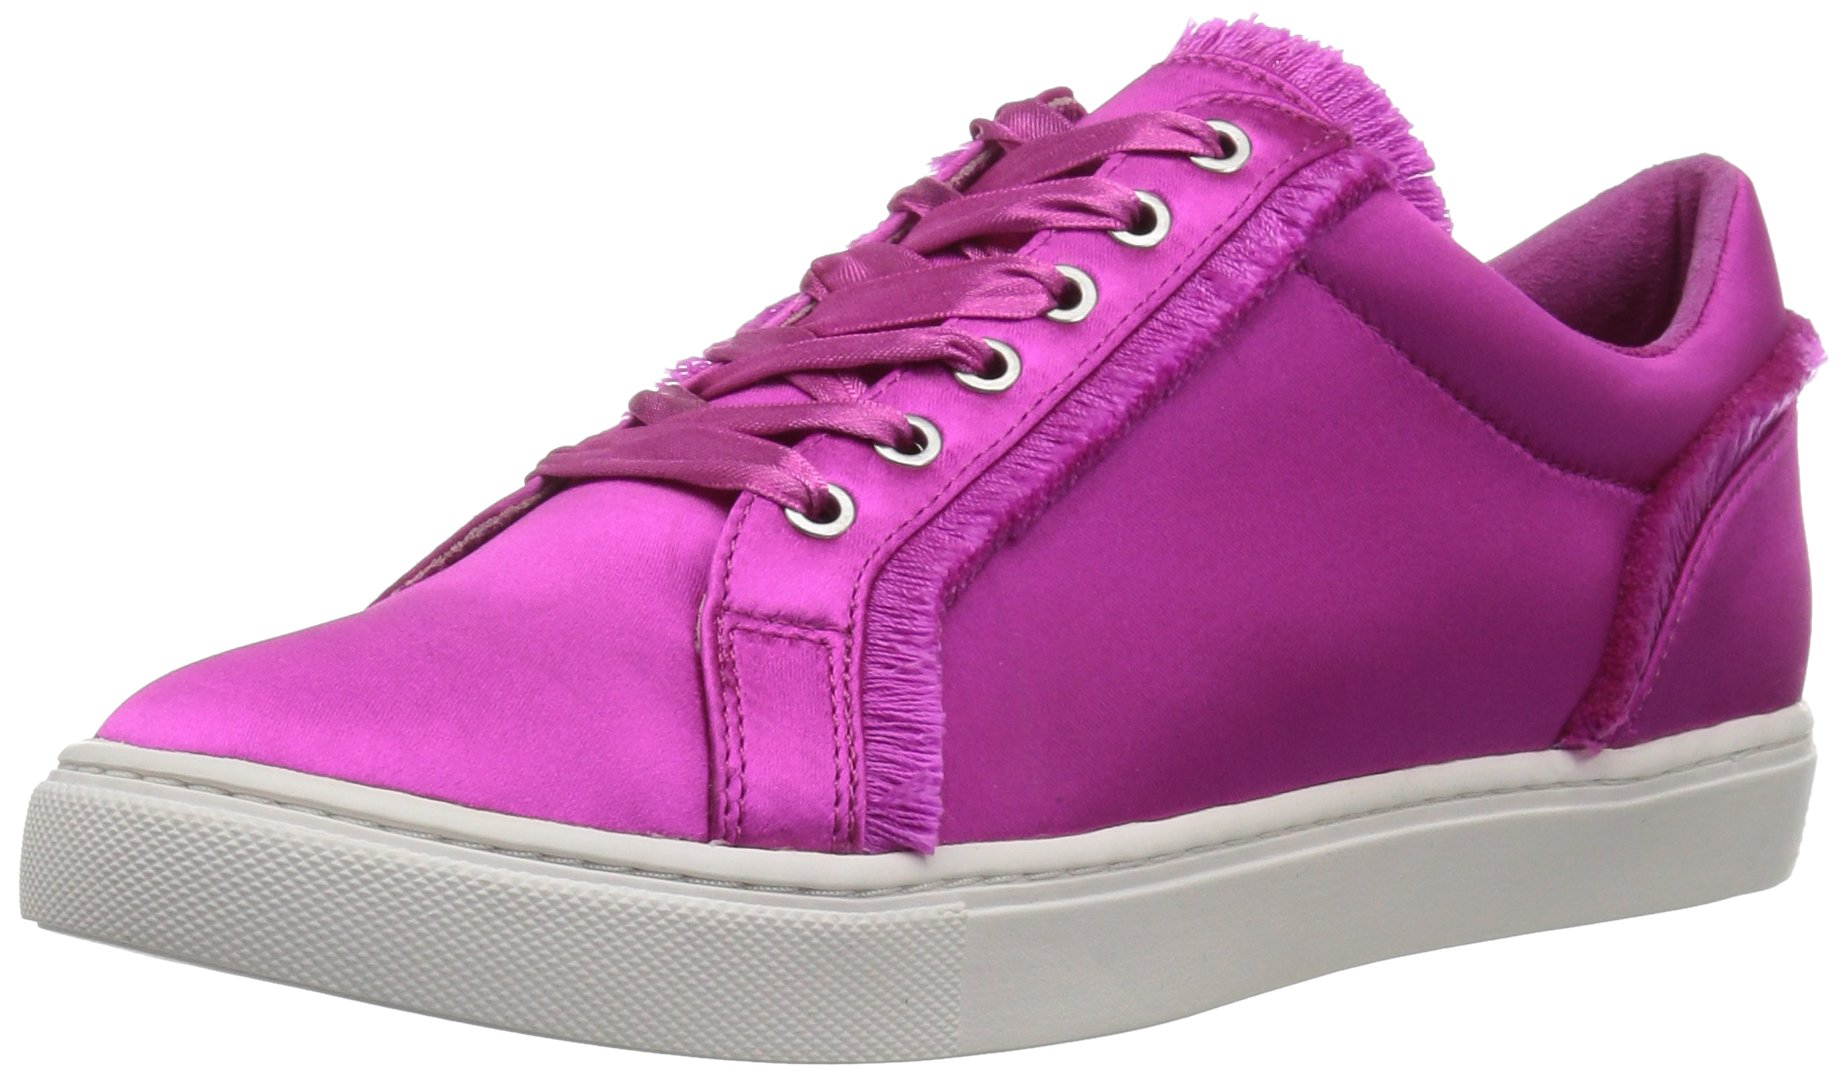 The Fix Women's Tinsley Frayed Silk Lace-up Sneaker, Bright Pink, 10 B US